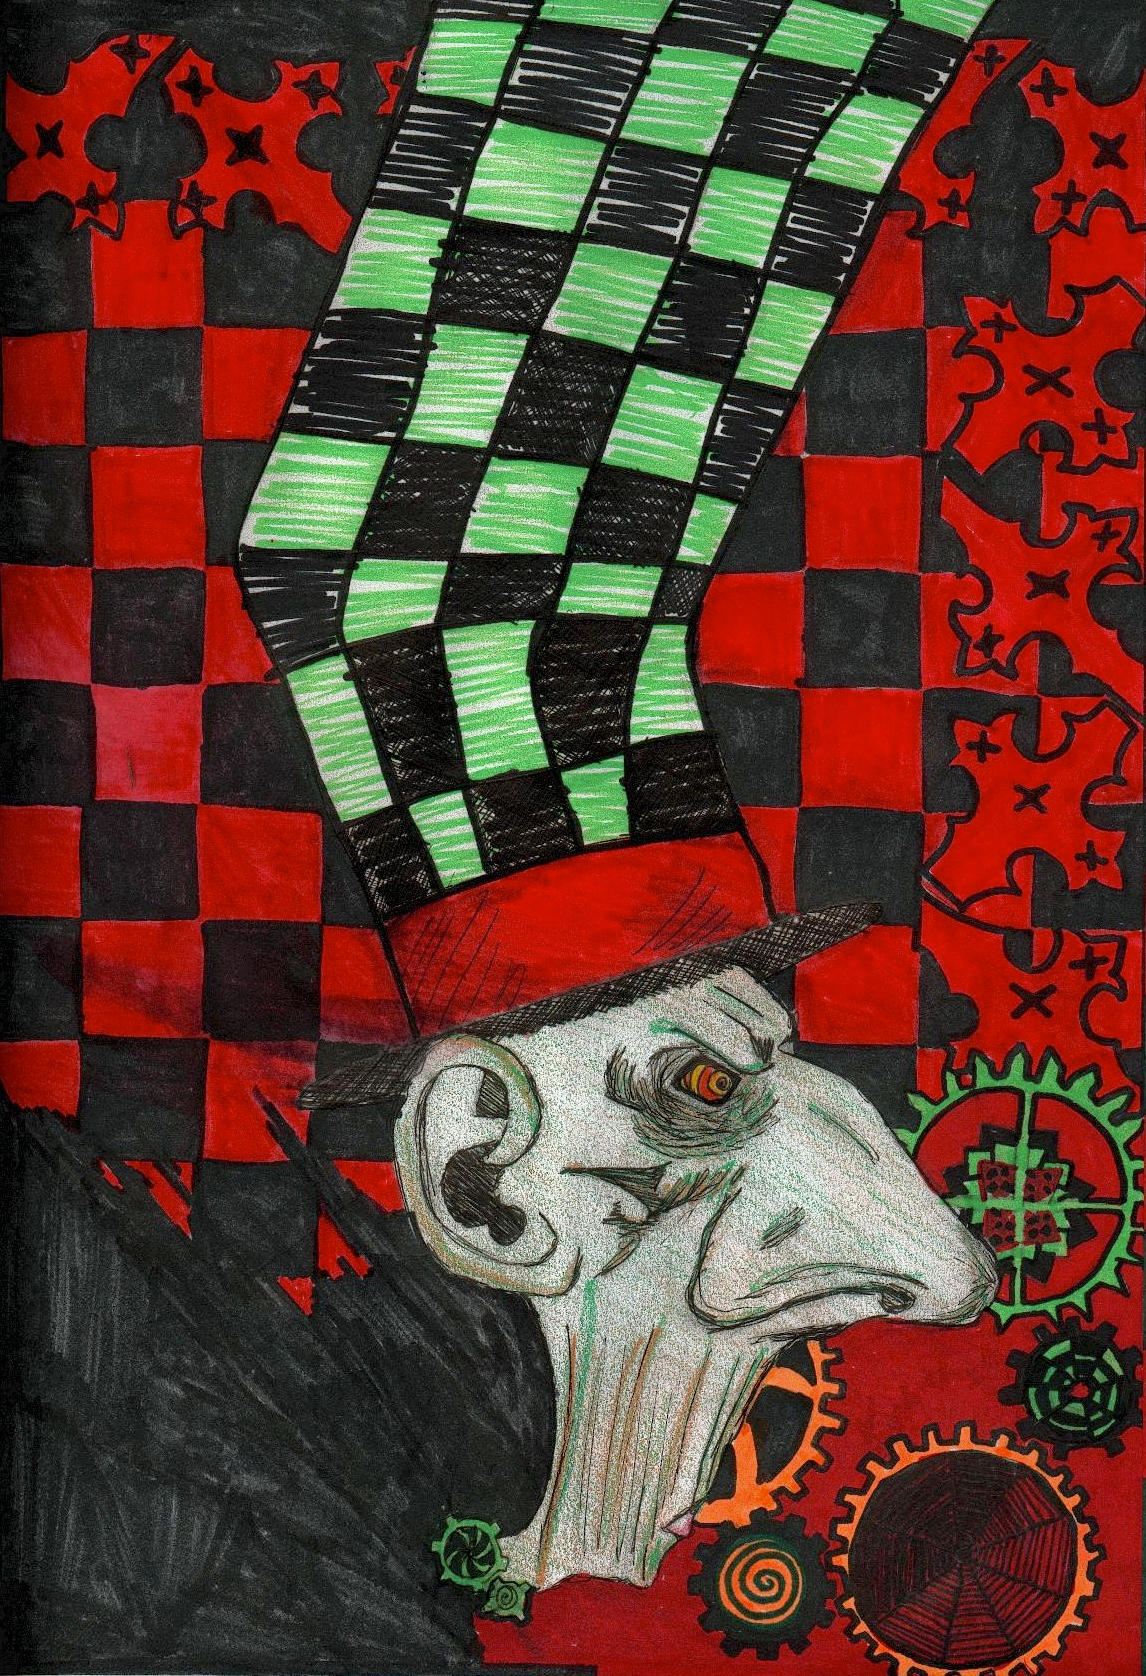 The Mad Hatter by xasylumx